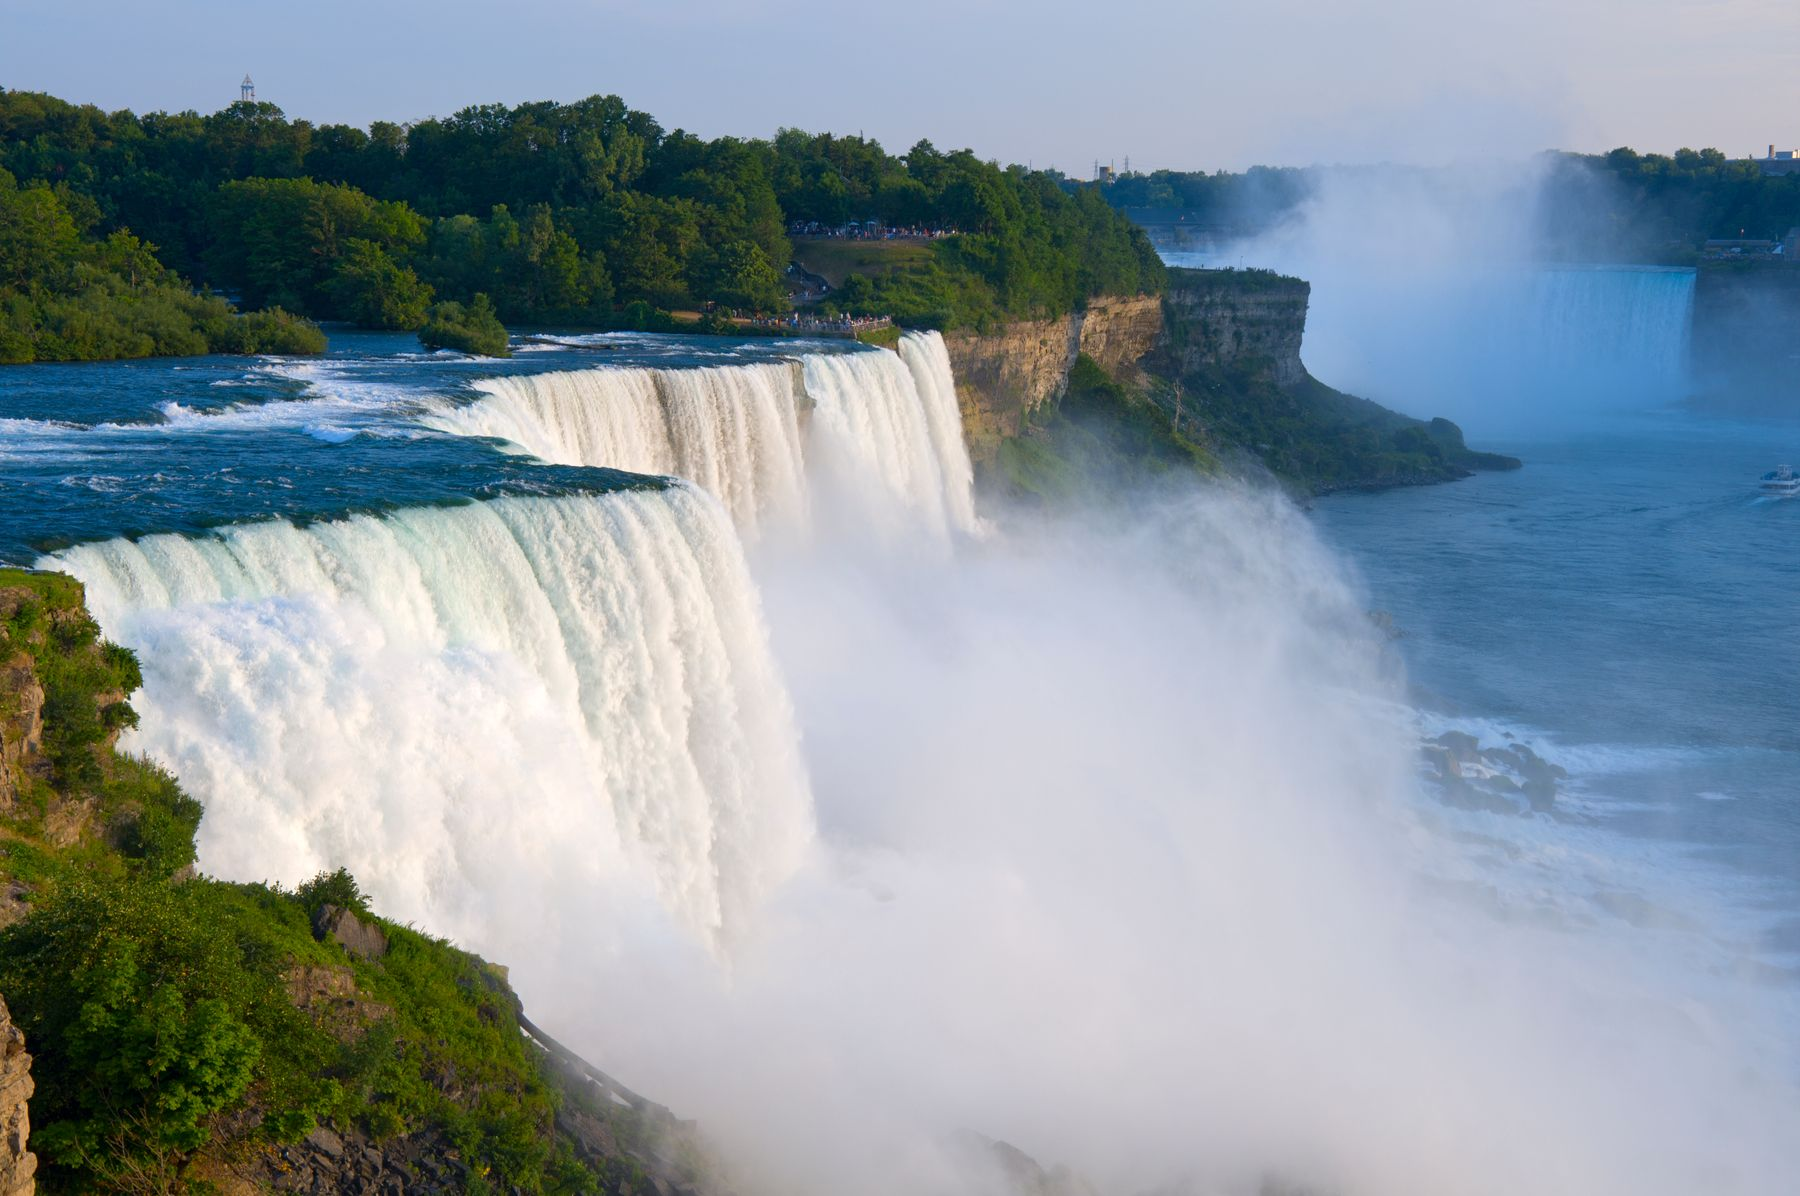 view of Niagara Falls with misty water